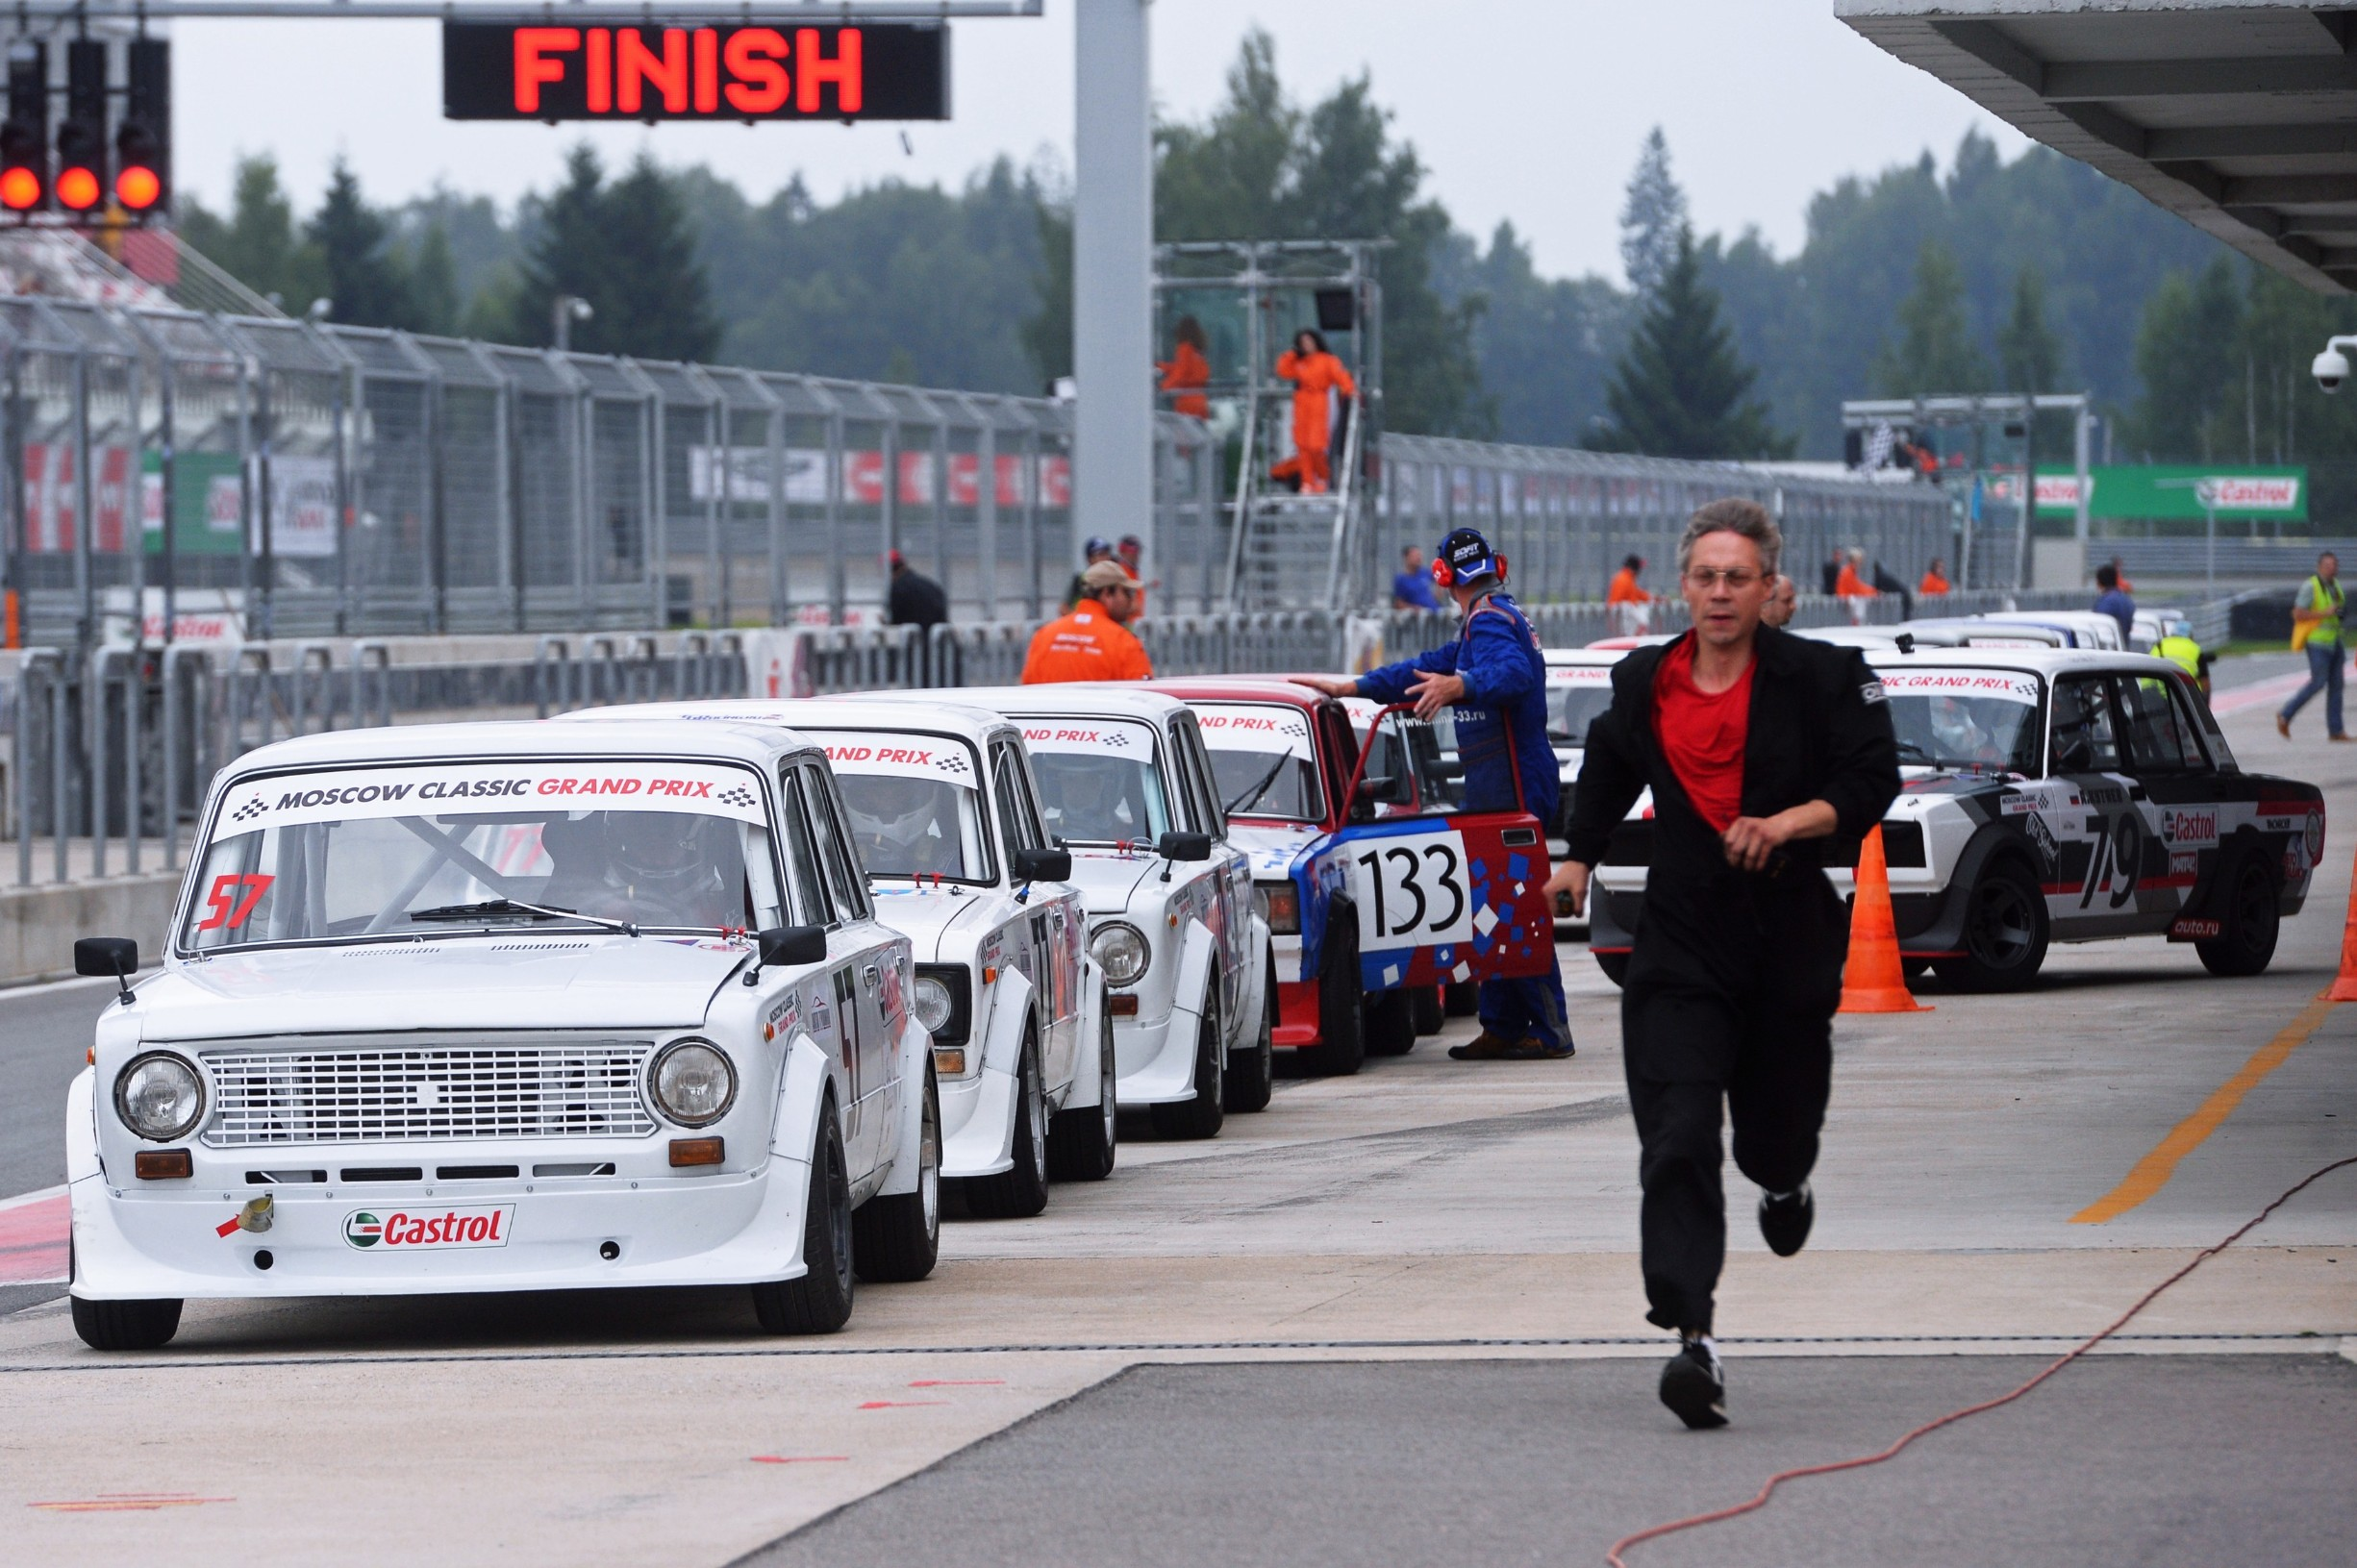 5596778 22.07.2018 VAZ 2101 cars at the 2018 Moscow Classic Grand Prix international vintage car circuit racing series in the Moscow Region., Image: 378933761, License: Rights-managed, Restrictions: , Model Release: no, Credit line: Mikhail Voskresenskiy / Sputnik / Profimedia